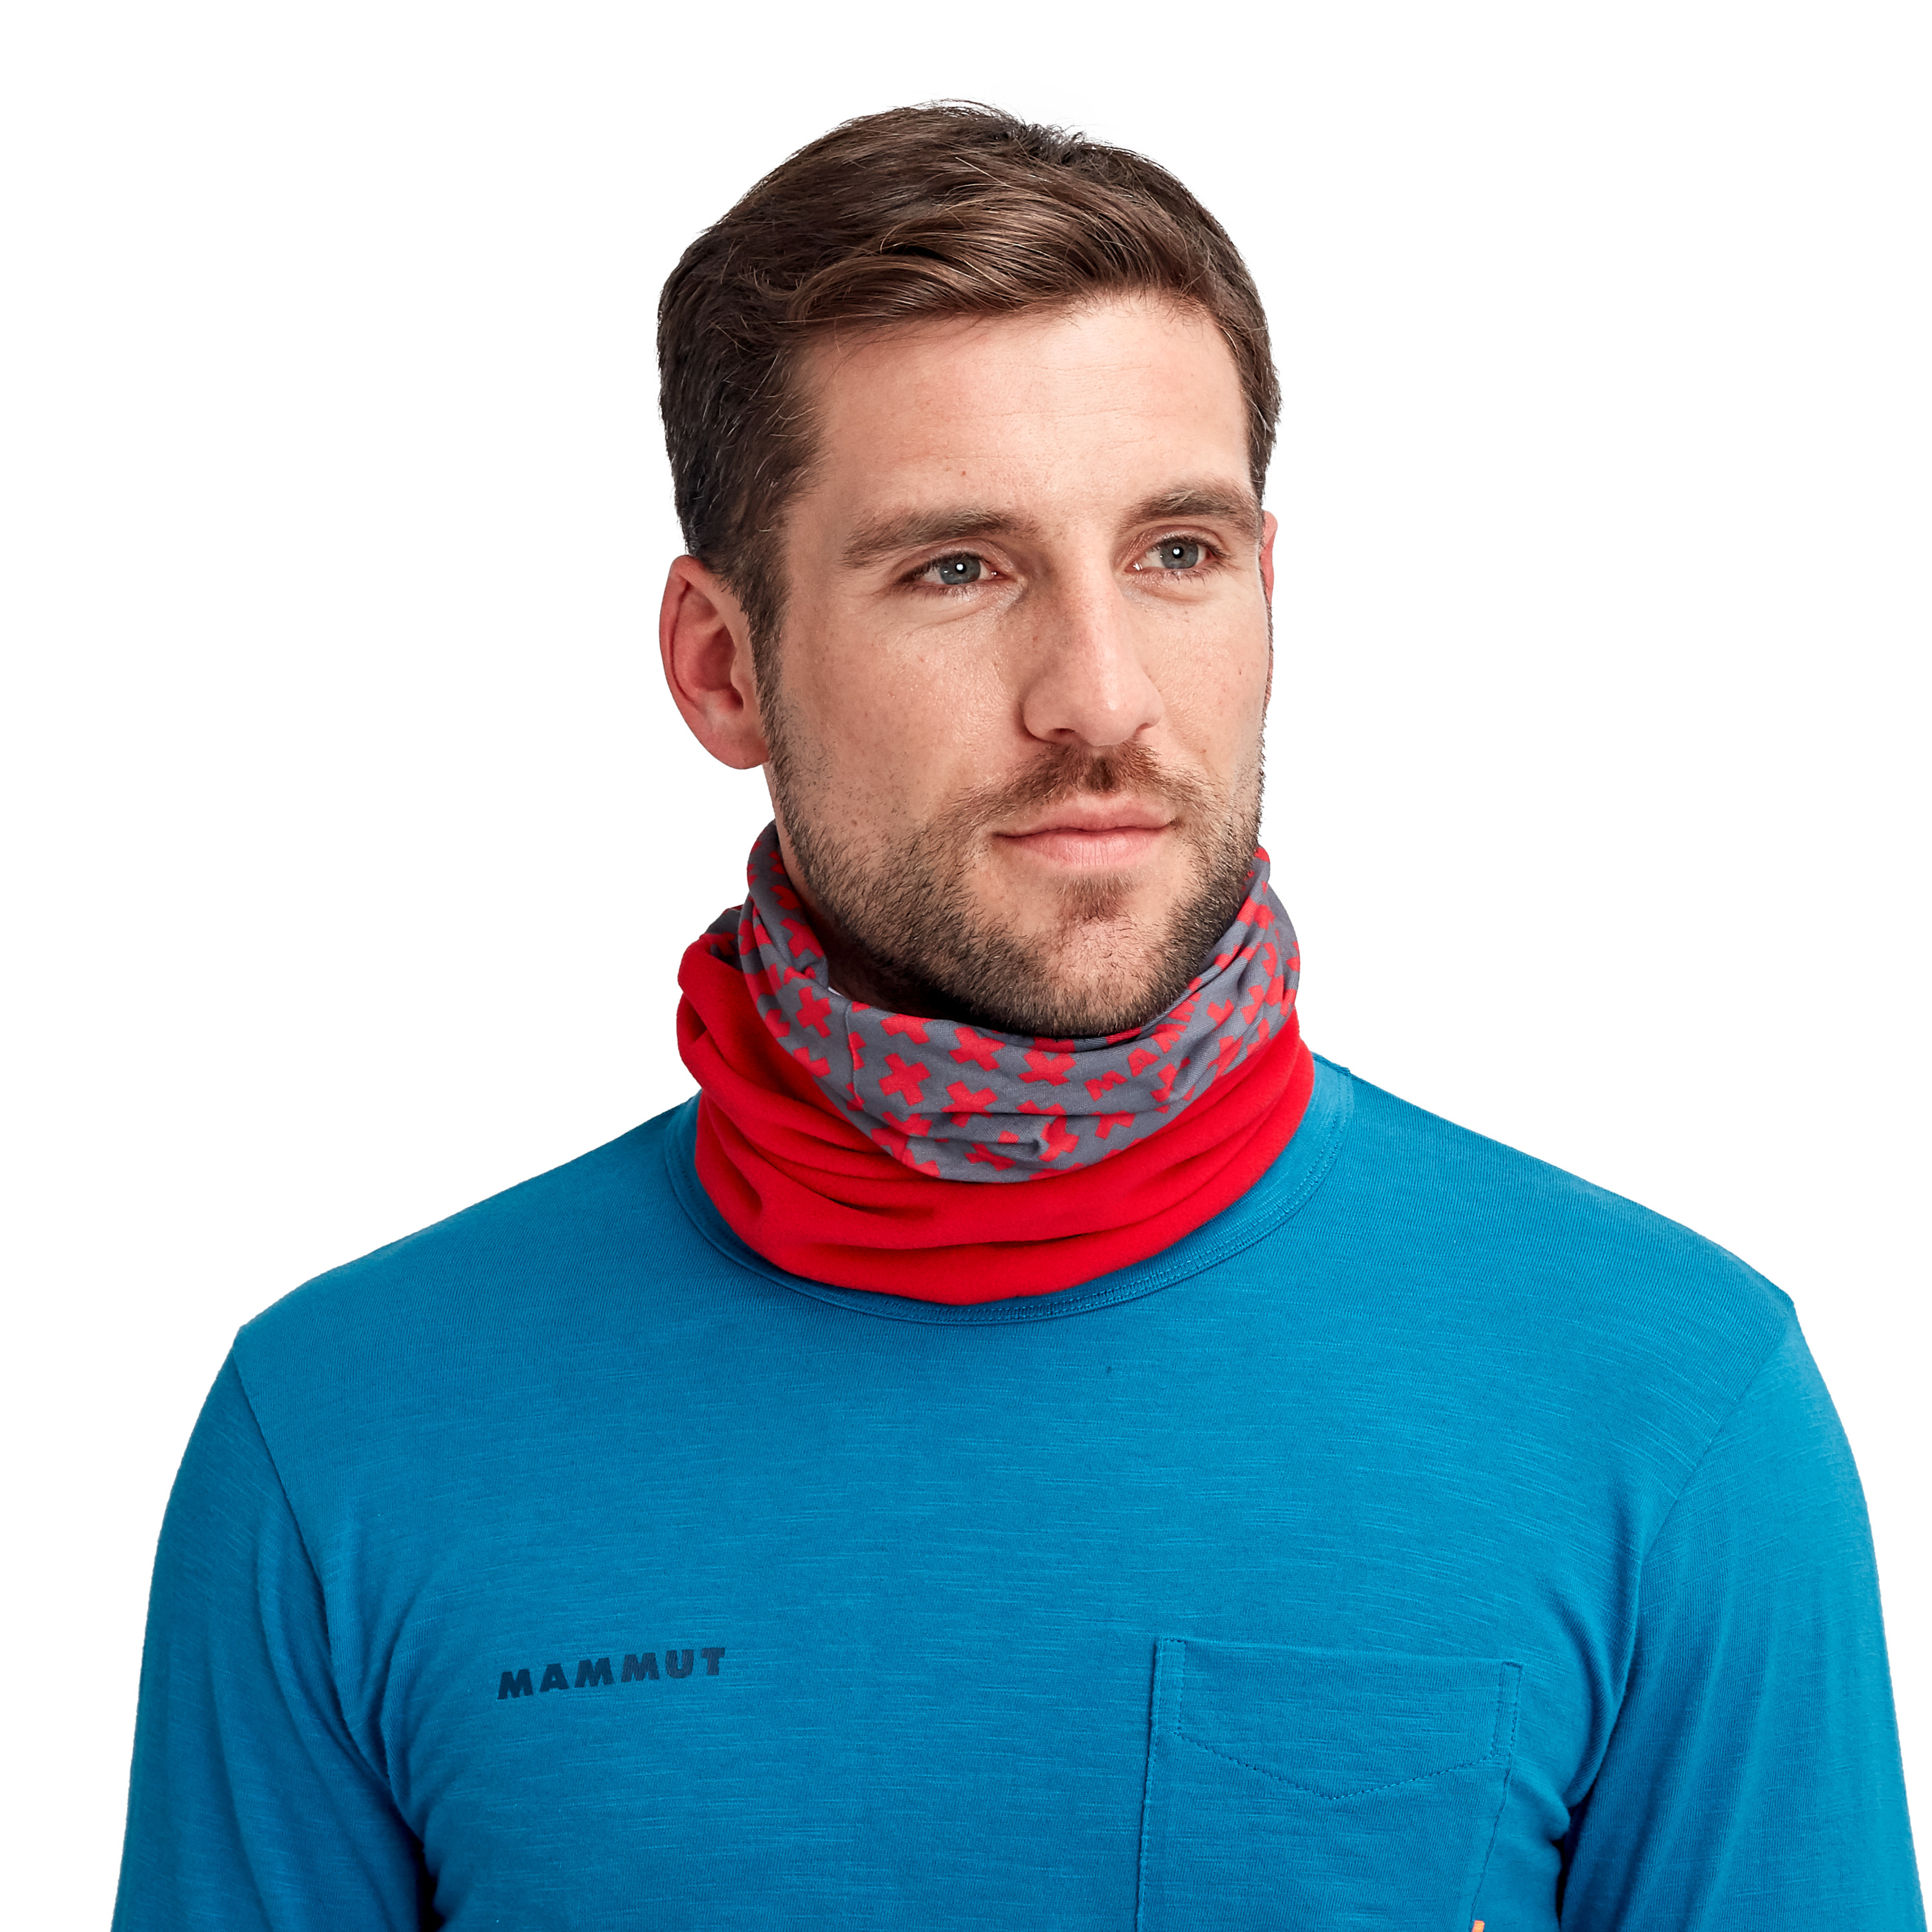 Mammut Thermo Neck Gaiter product image